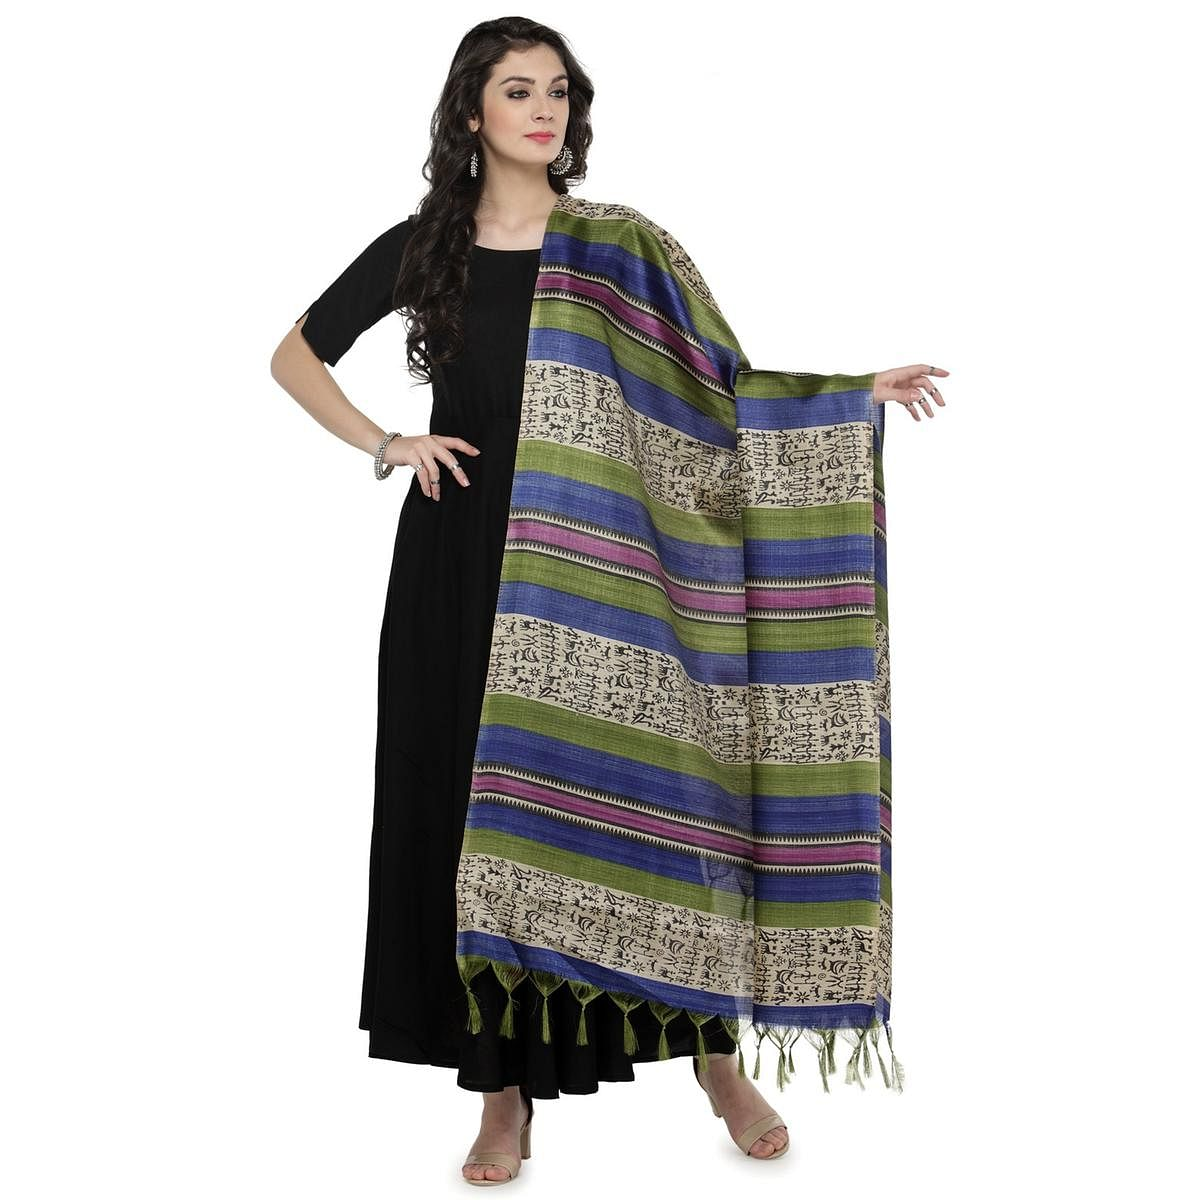 Blue-Green Multi Colored Striped Warli Print Khadi Silk Dupatta